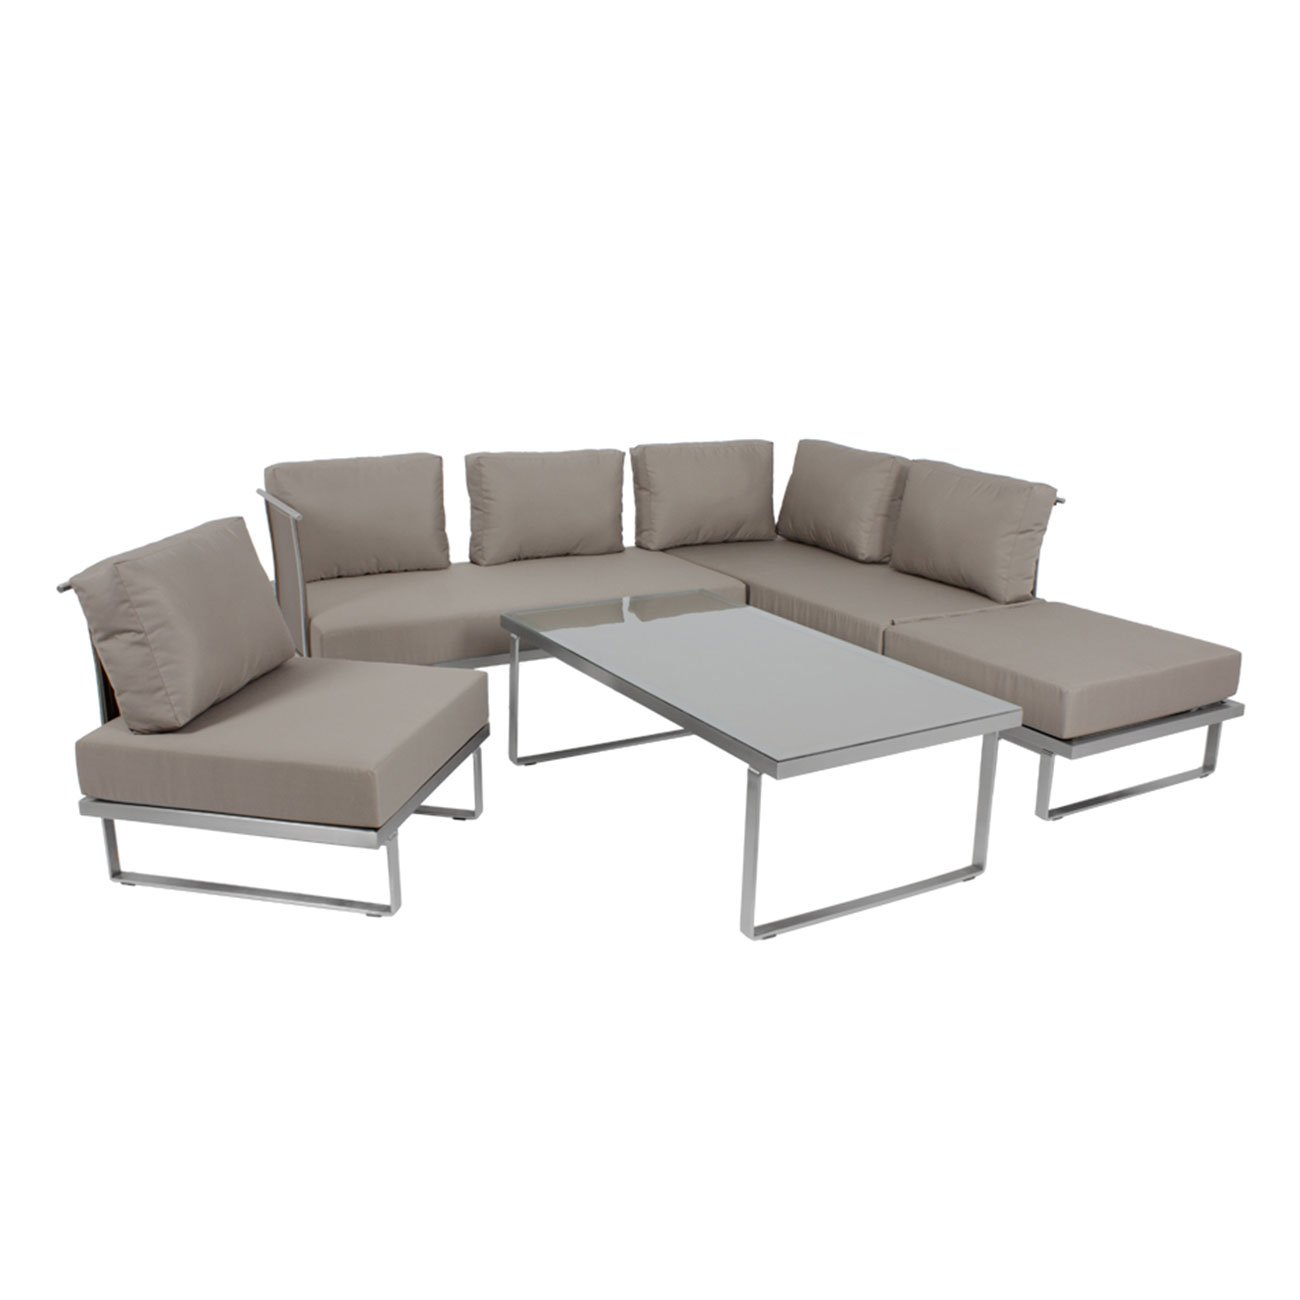 Outdoor Lounge Sofa Outliv. Corsica 4tlg. multifunktional ...